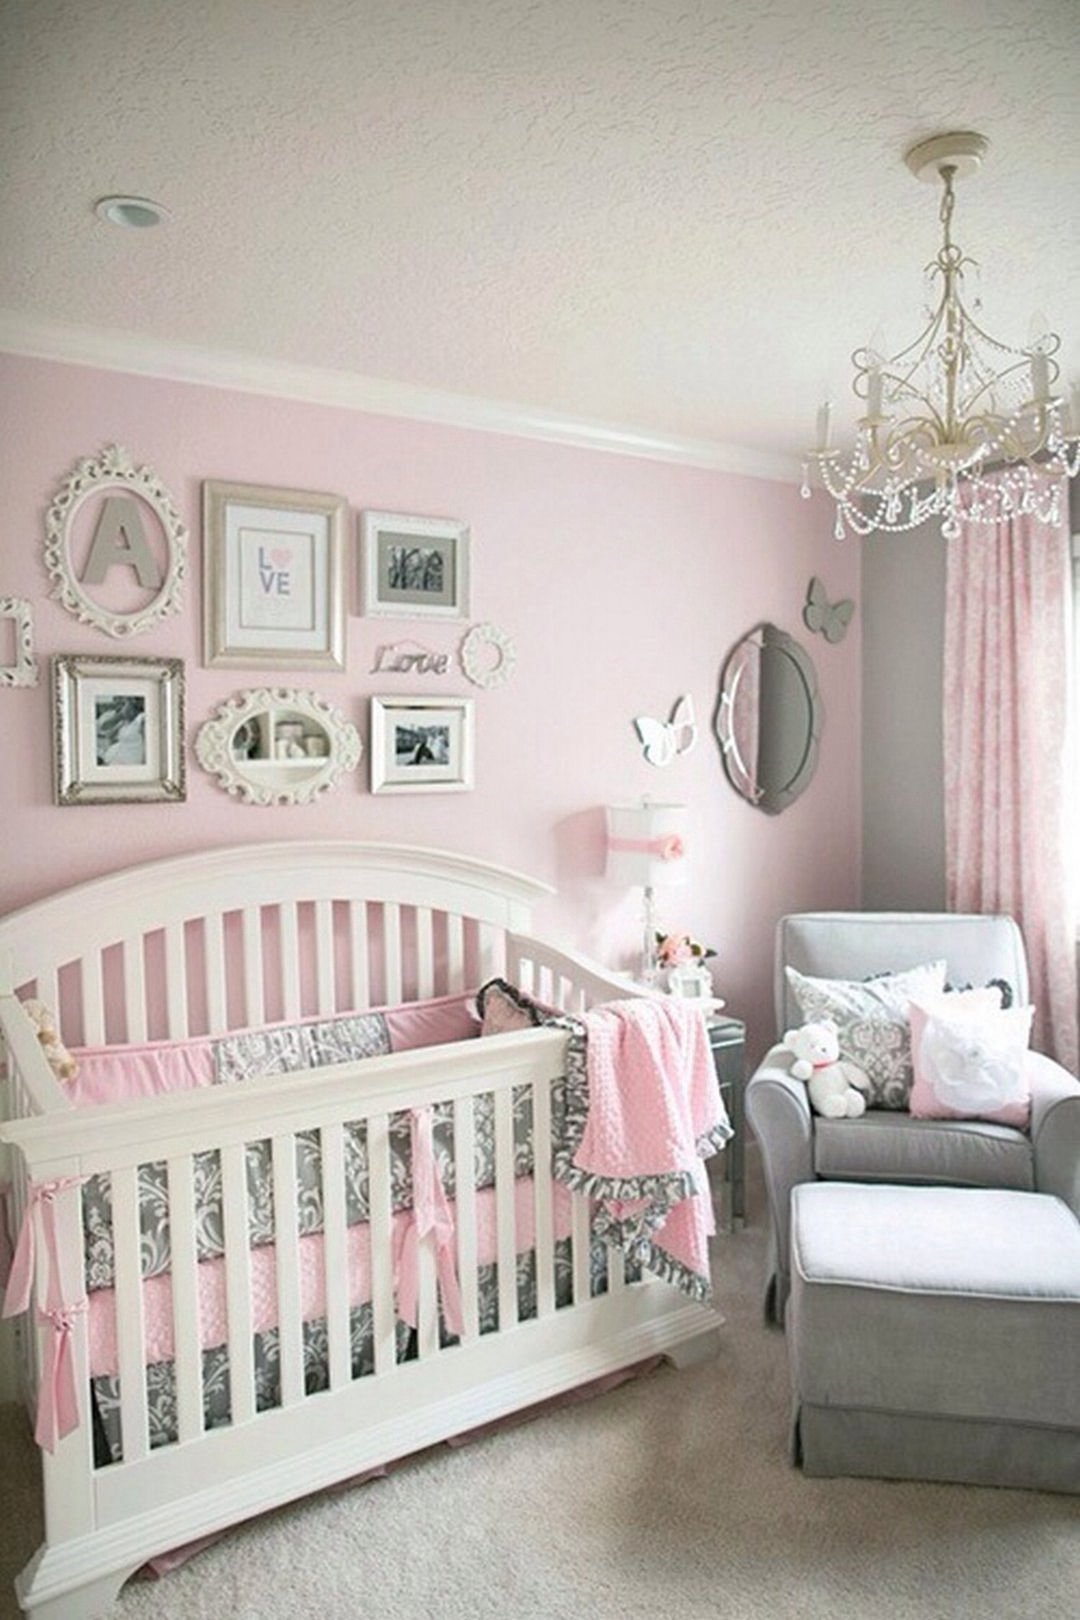 10 Ideal Baby Room Ideas For Girl 6 actionable tips on baby girl nursery nursery babies and girls 13